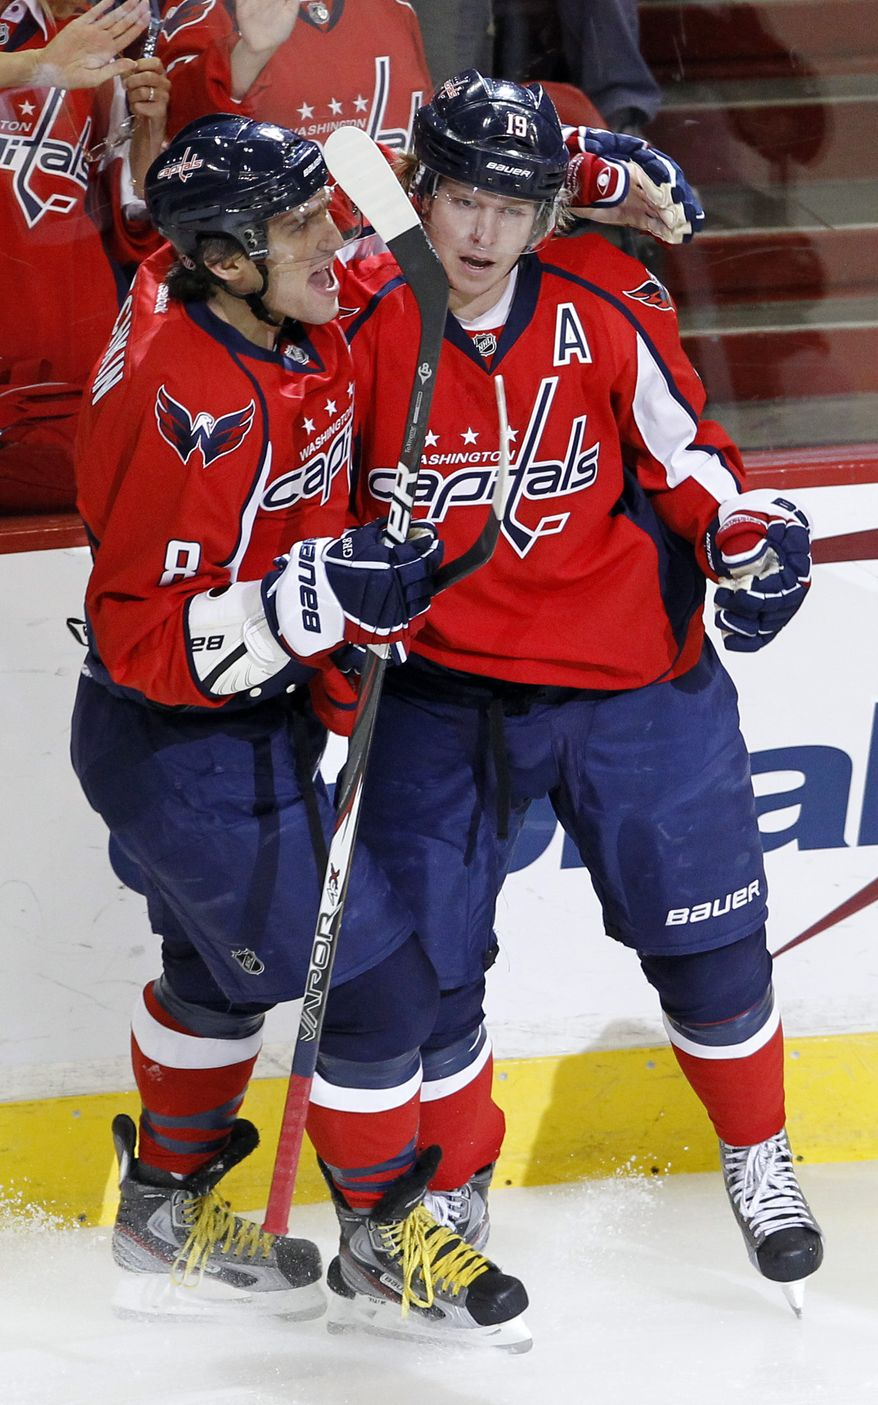 Washington Capitals left wing Alex Ovechkin (8), of Russia, congratulates teammate Nicklas Backstrom, right, of Sweden, after Backstrom scored on Ottawa Senators goalie Craig Anderson (41) during the first period of an NHL hockey game in Washington, Saturday, Dec. 3, 2011. (AP Photo/Ann Heisenfelt)